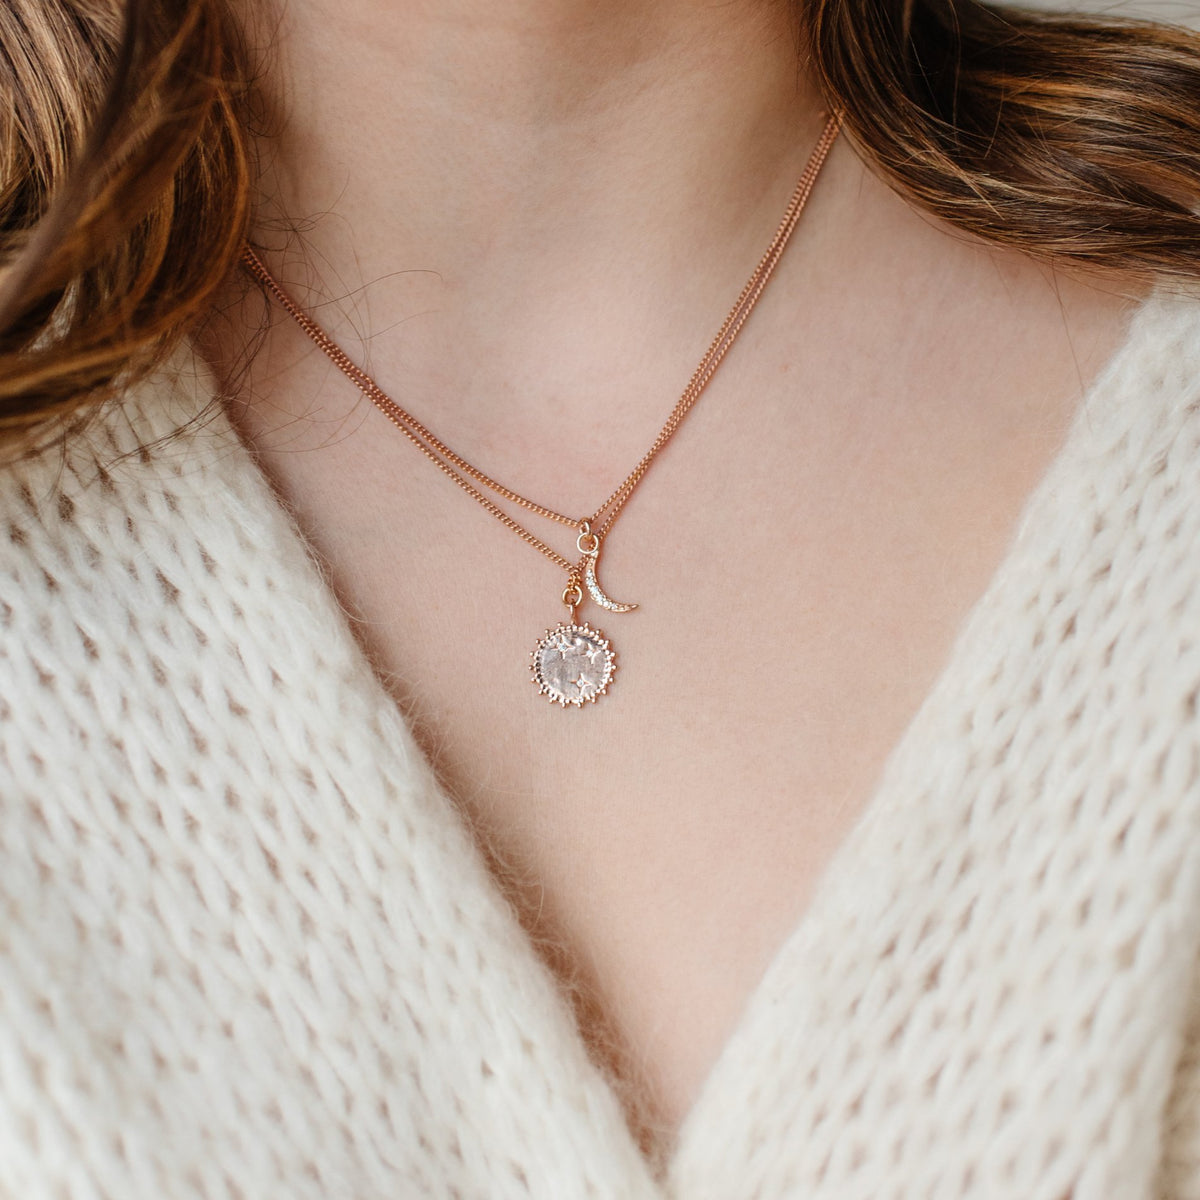 BELIEVE SOLEIL STAR ICON - CUBIC ZIRCONIA & ROSE GOLD - SO PRETTY CARA COTTER